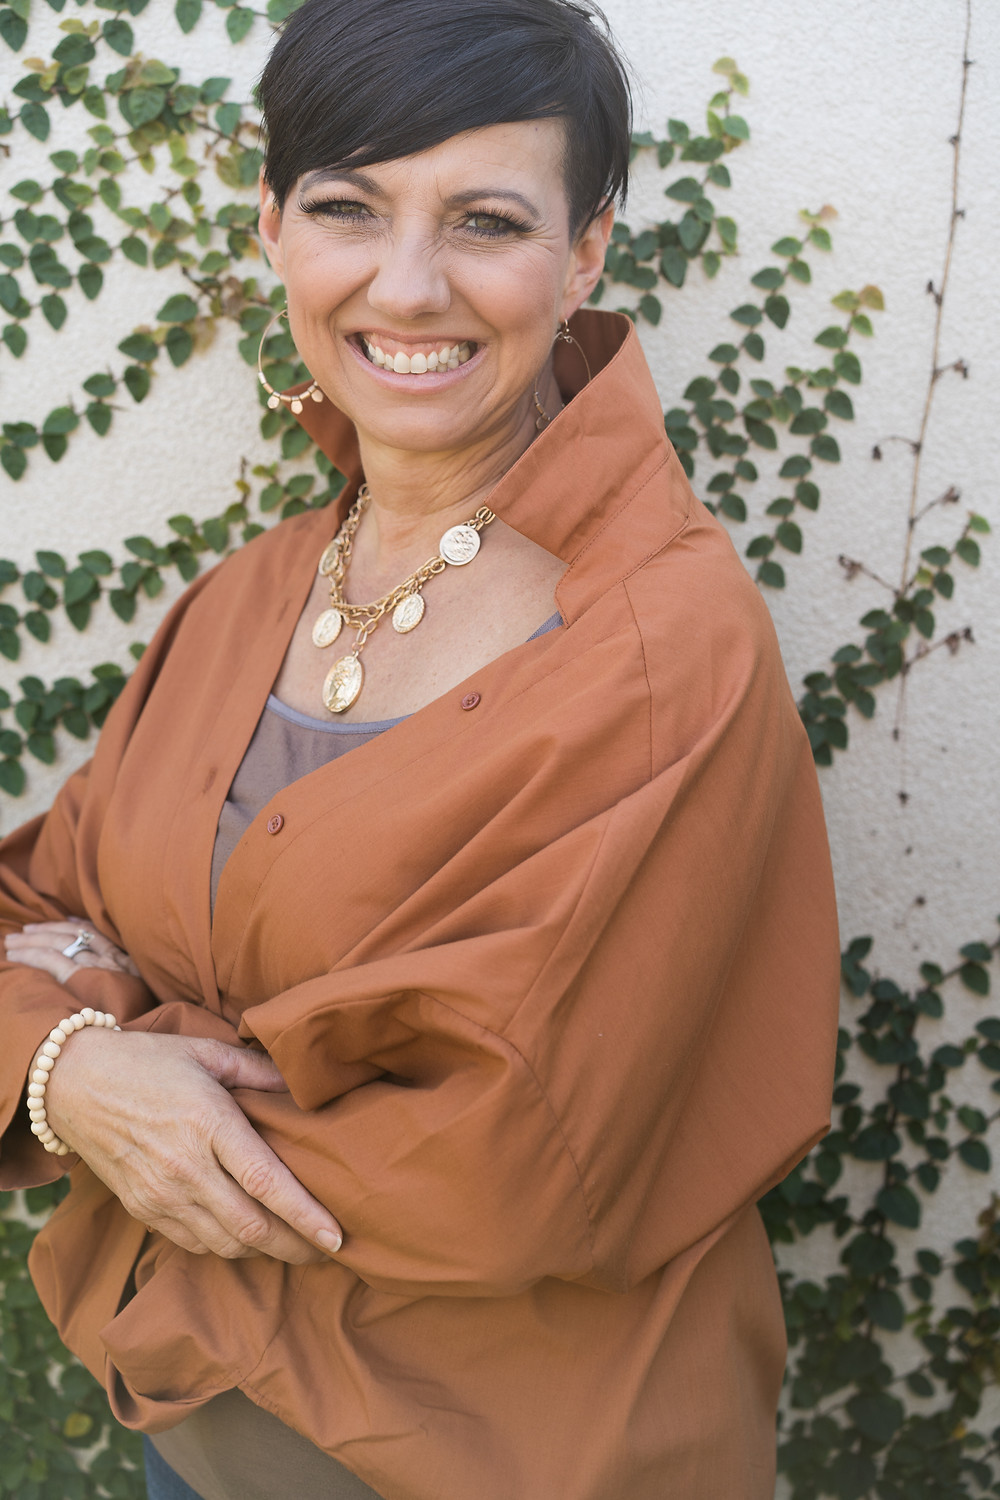 Freedom Life Coach, Speaker, Author, and the founder of The Brave Gathering event for women.